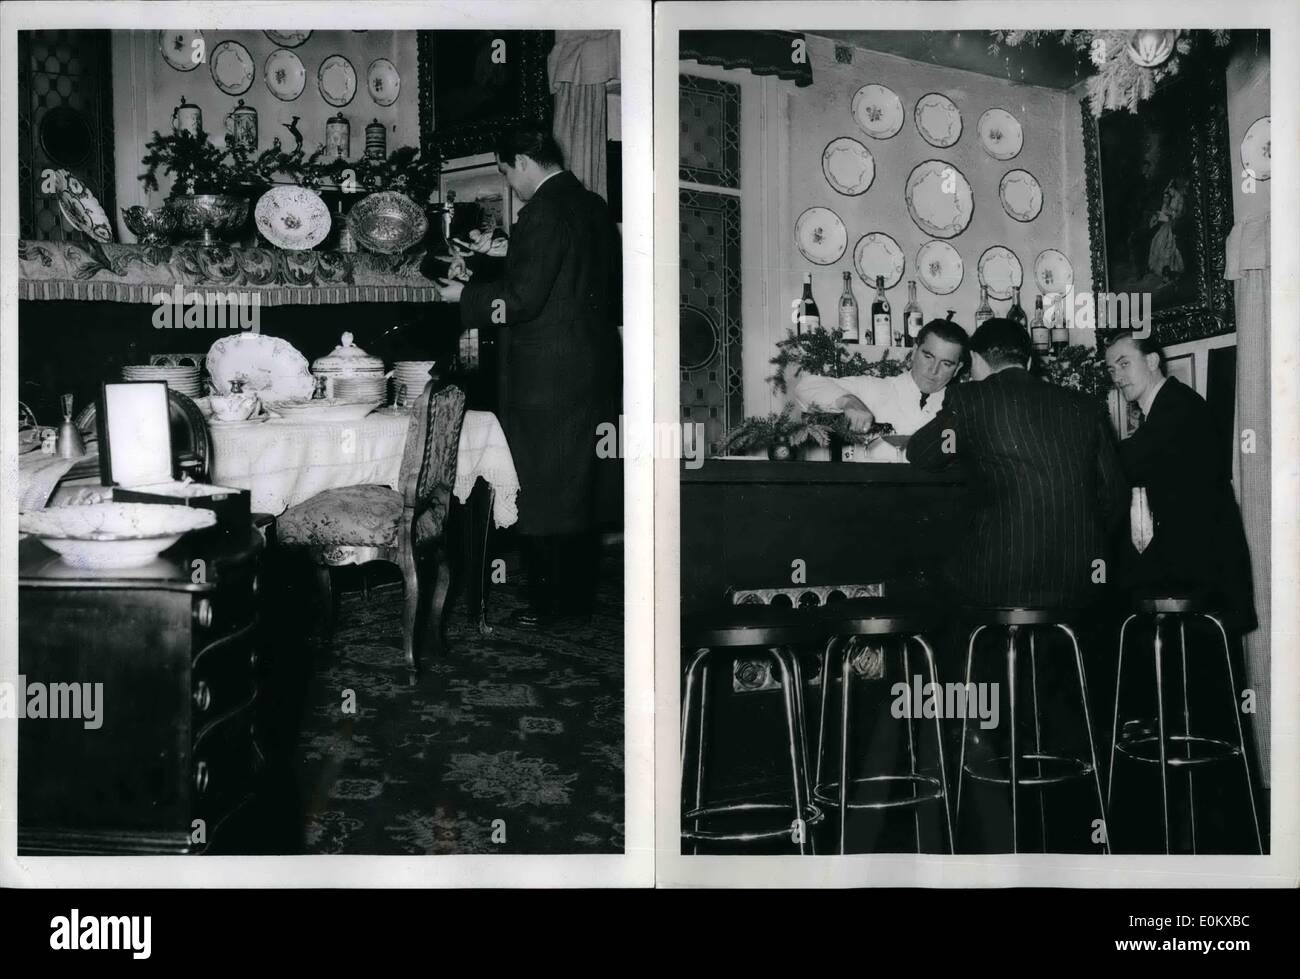 Dec. 12, 1950 - During the day, Fritz Weber's antique shop in Frankfurt is the home of valuable art treasures that he sells to an international clientele, but at night, as pictured on the right, the antique shop becomes a bar. Sammy Davis & Bluebell Girls, Lido Cabaret, - Stock Image